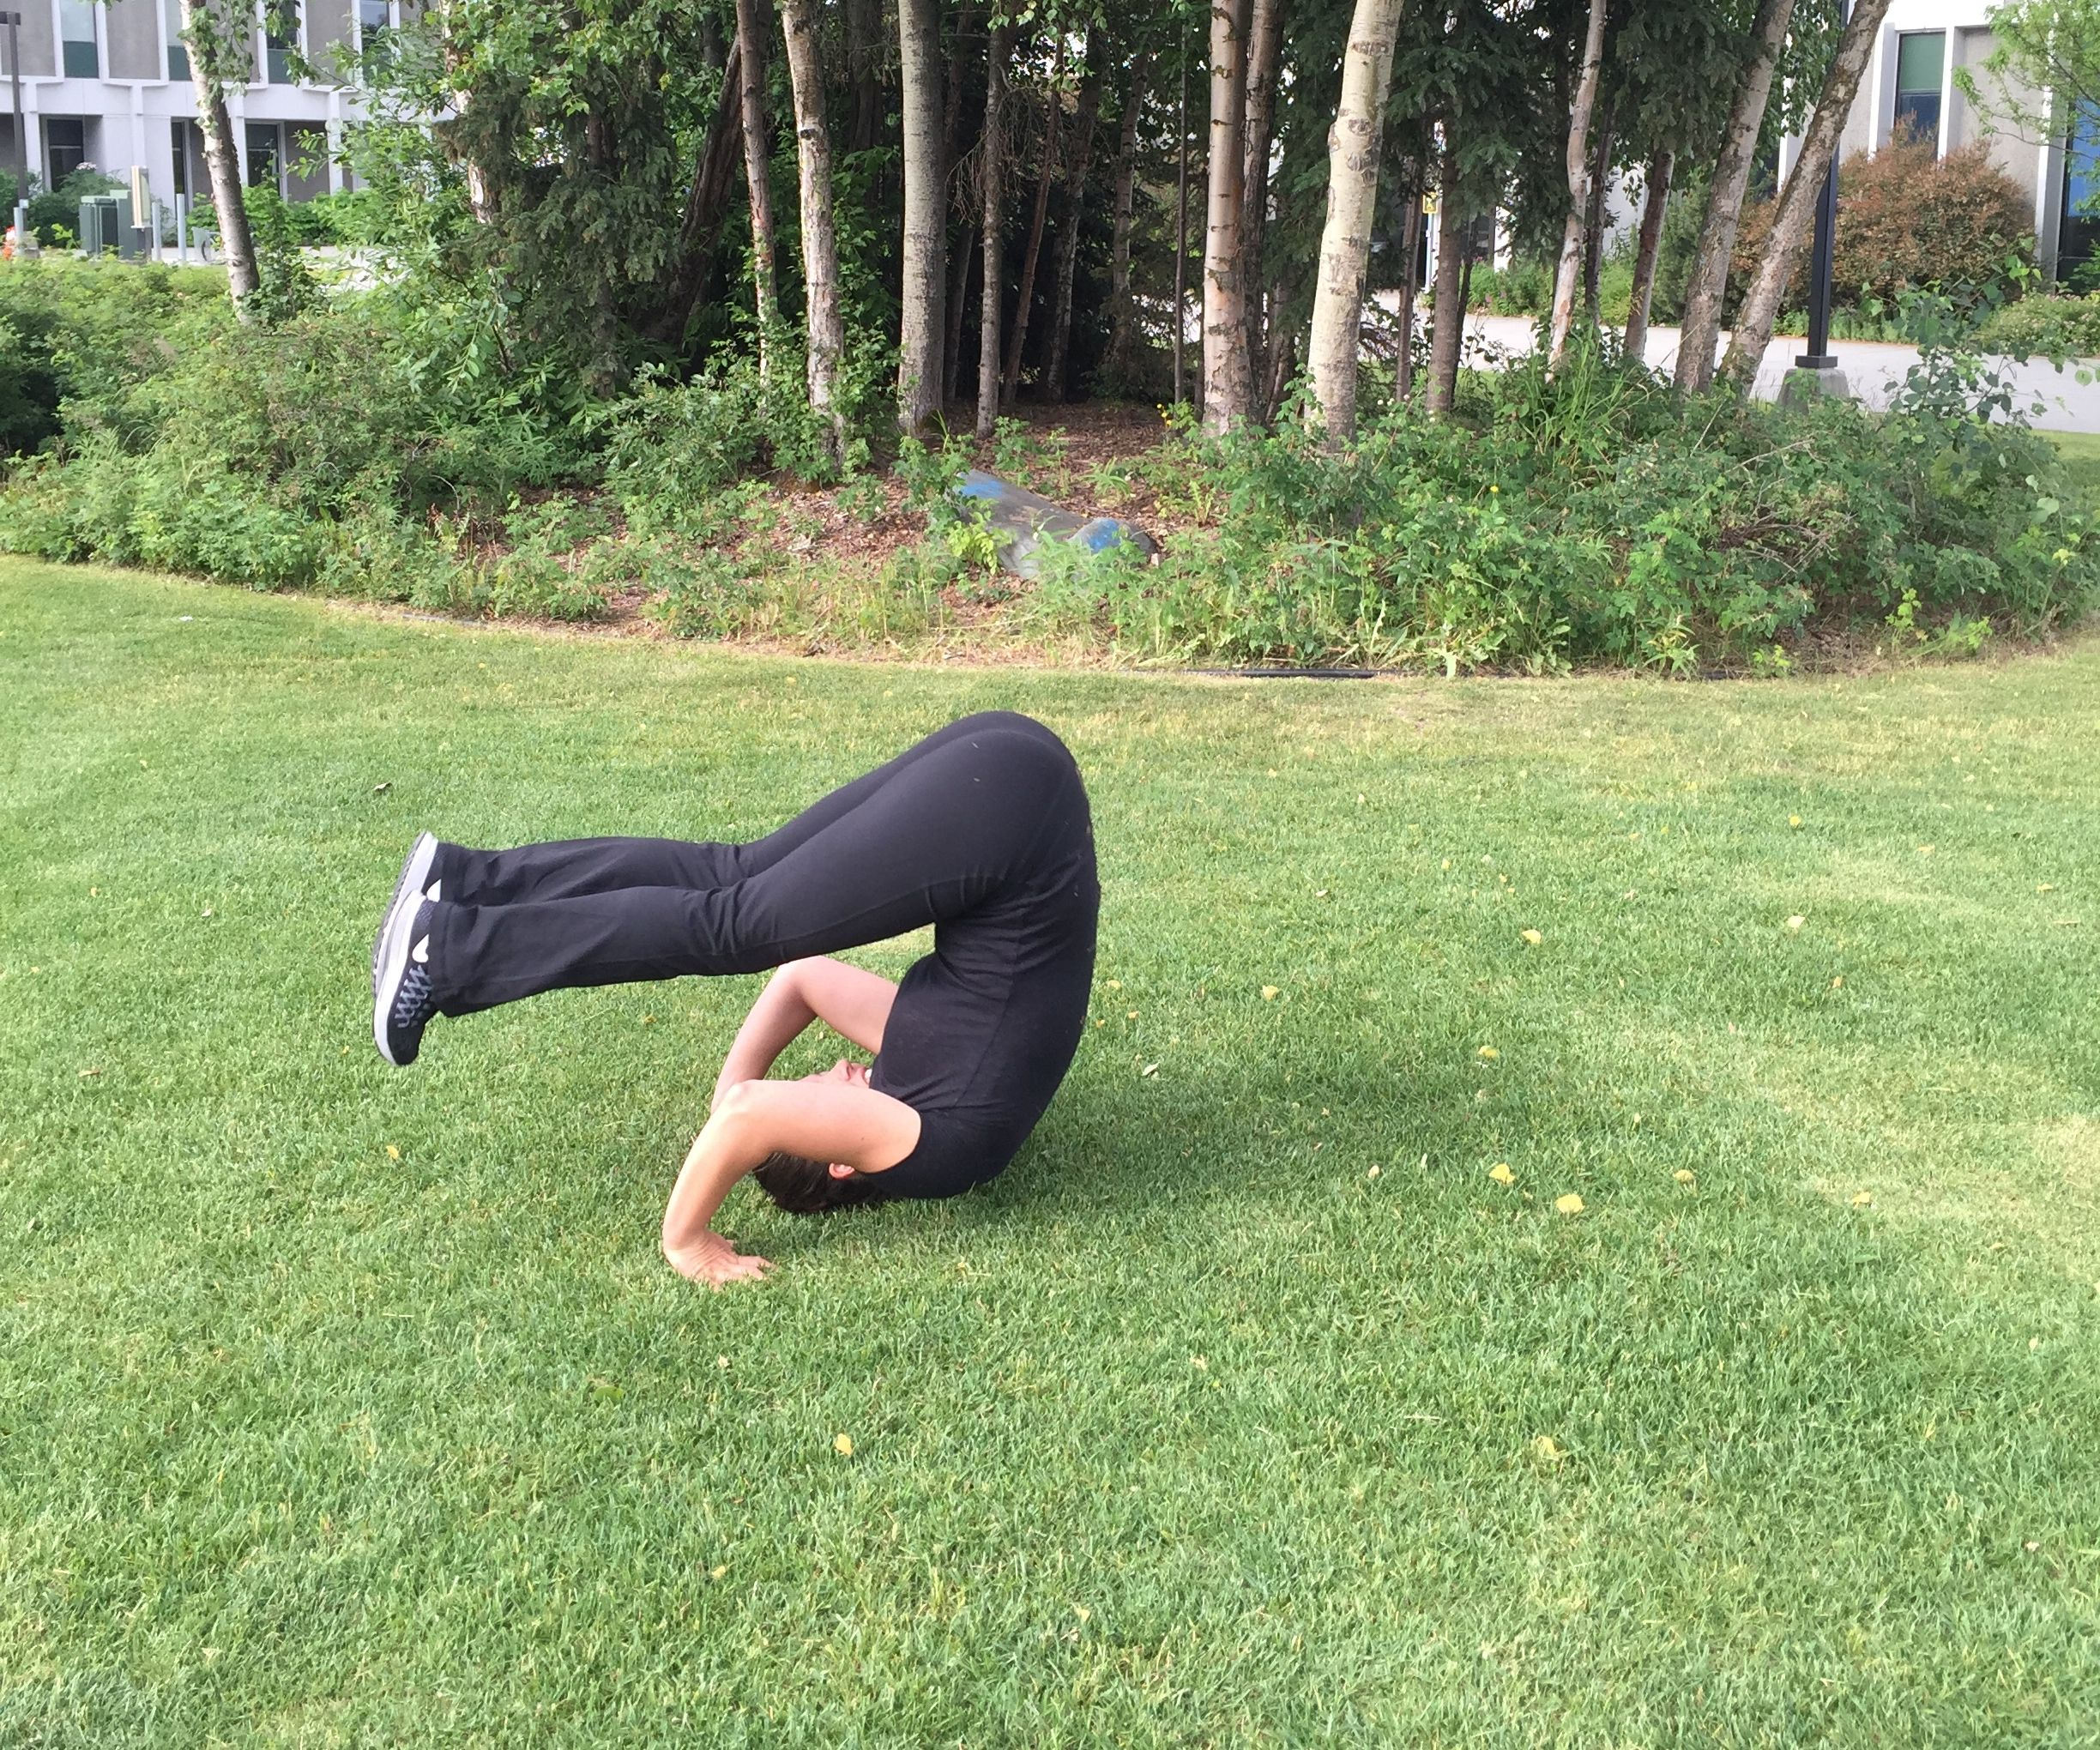 We begin to play sports: how to do a somersault back